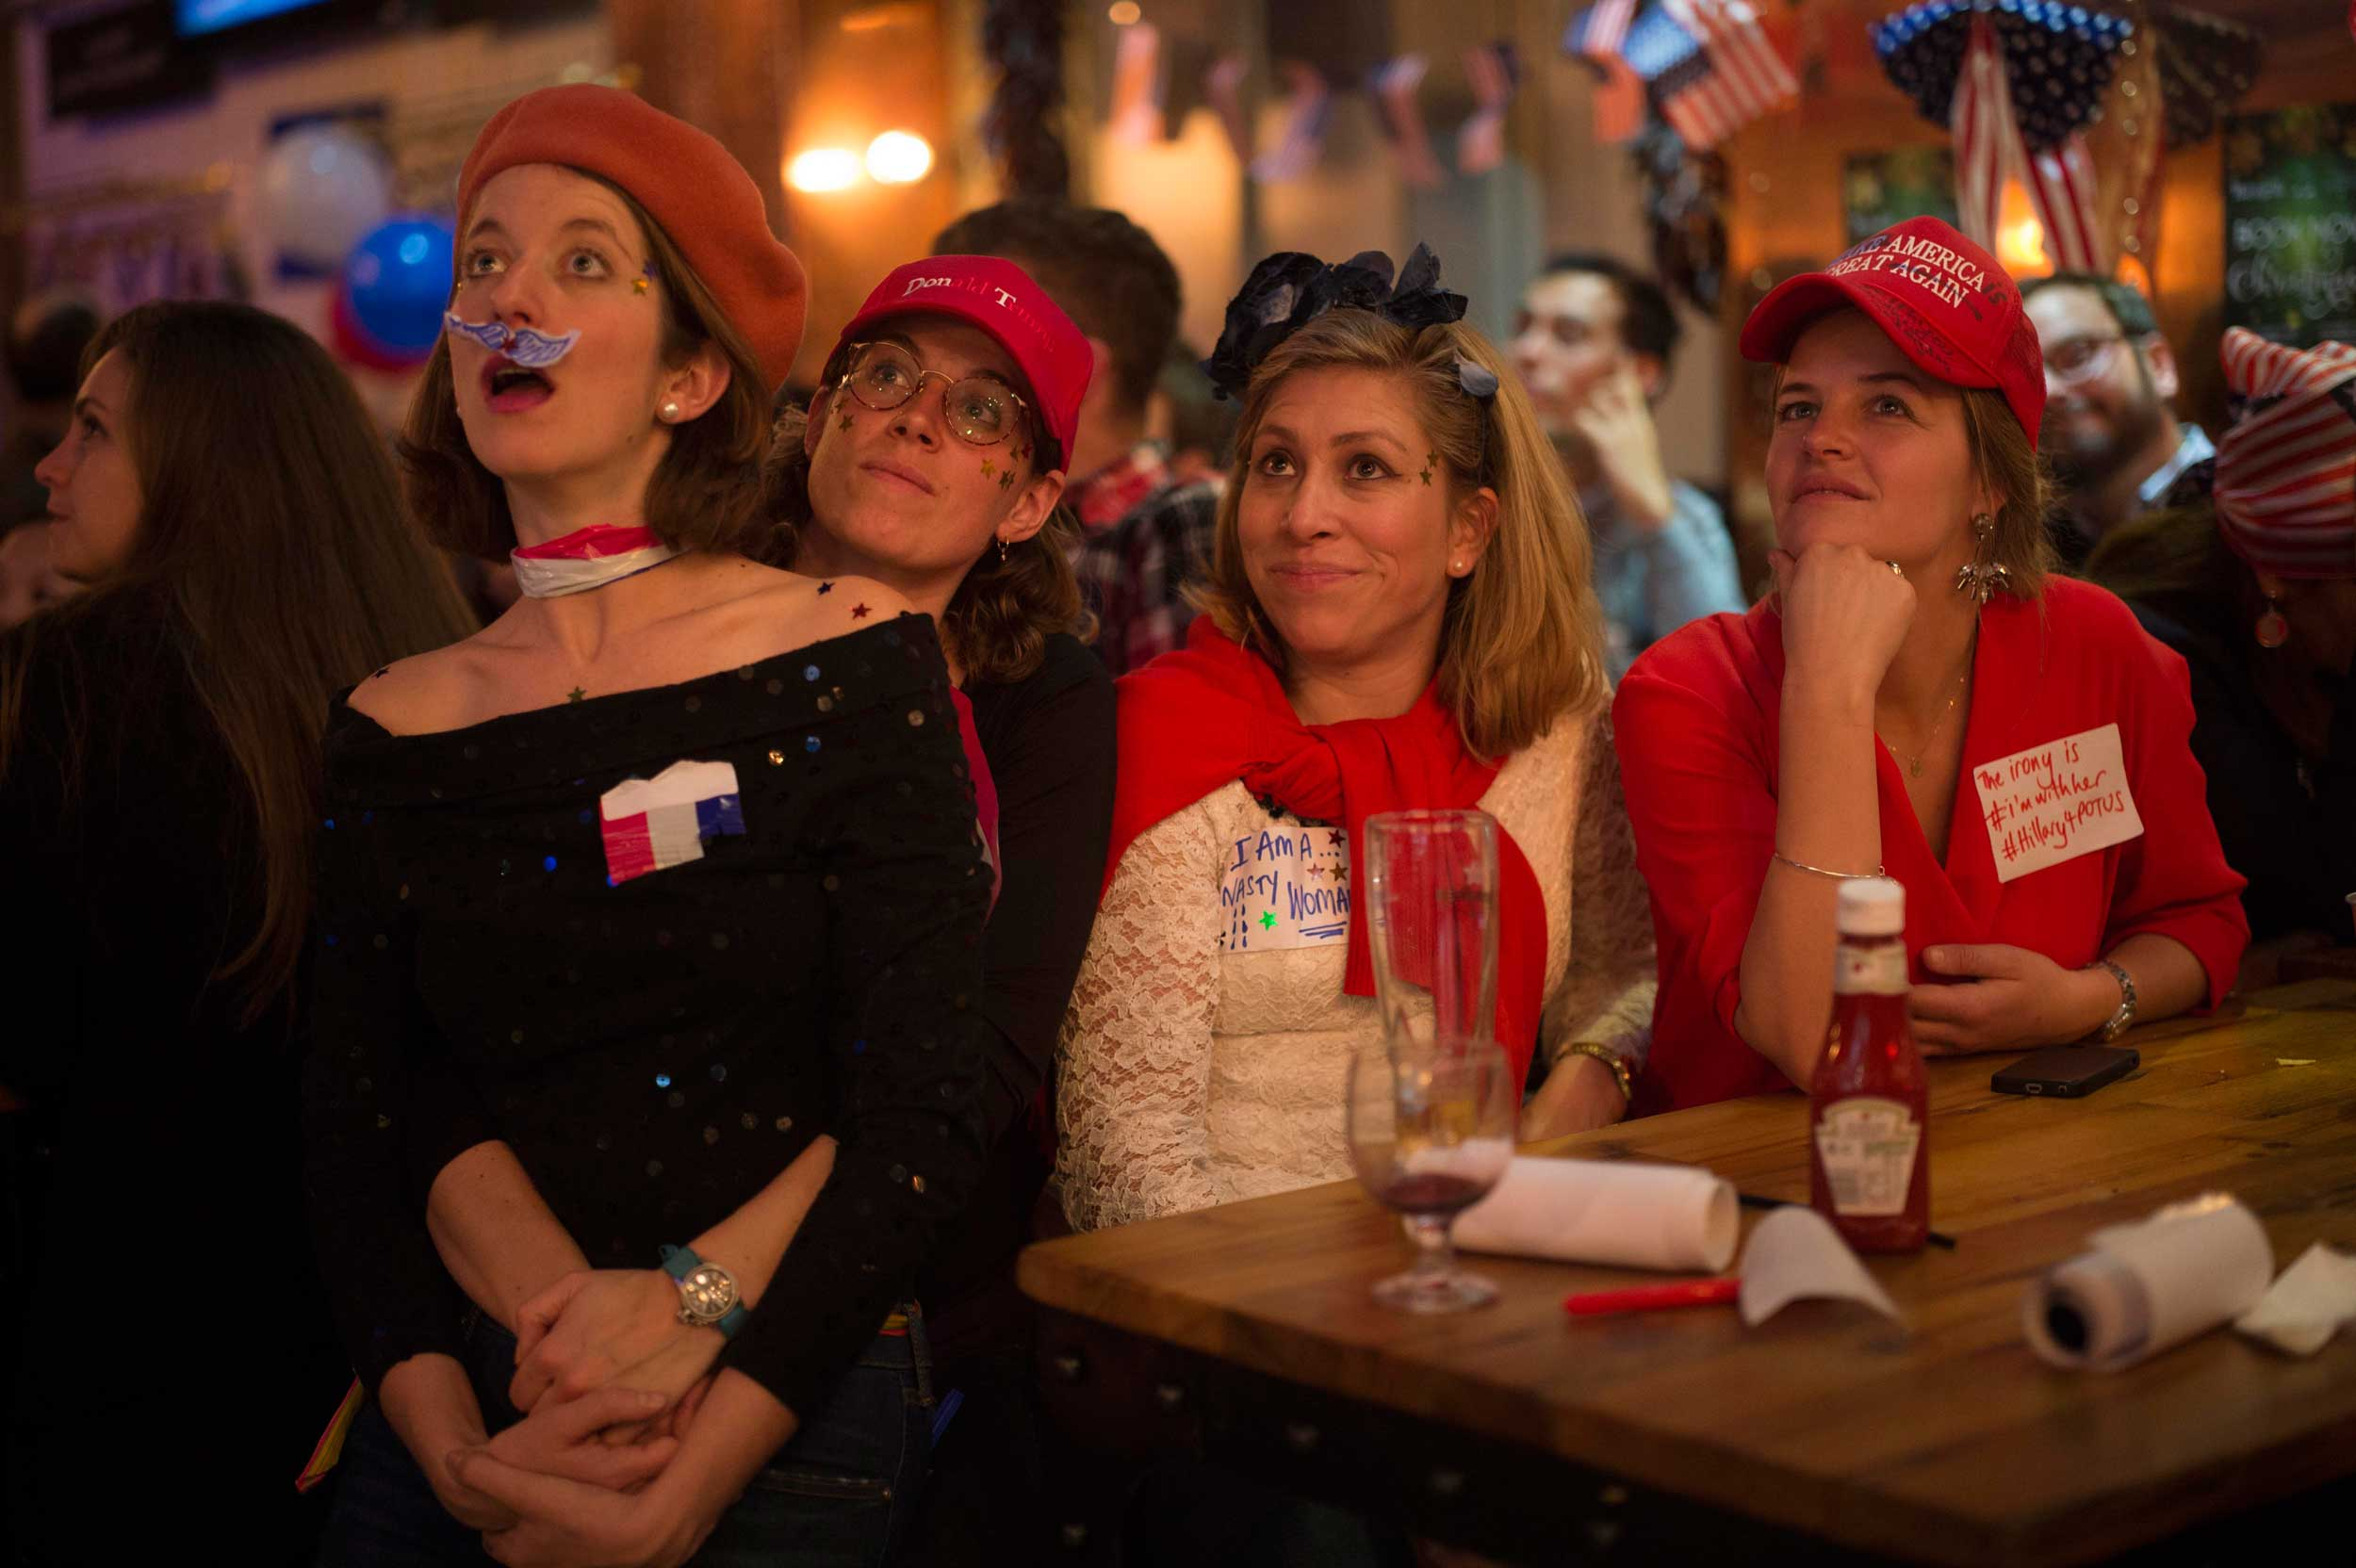 Democrats Abroad, the official Democratic Party arm for Americans living outside the U.S., at the Marylebone Sports Bar and Grill watch the U.S. election unfold. London, Nov. 9, 2016.